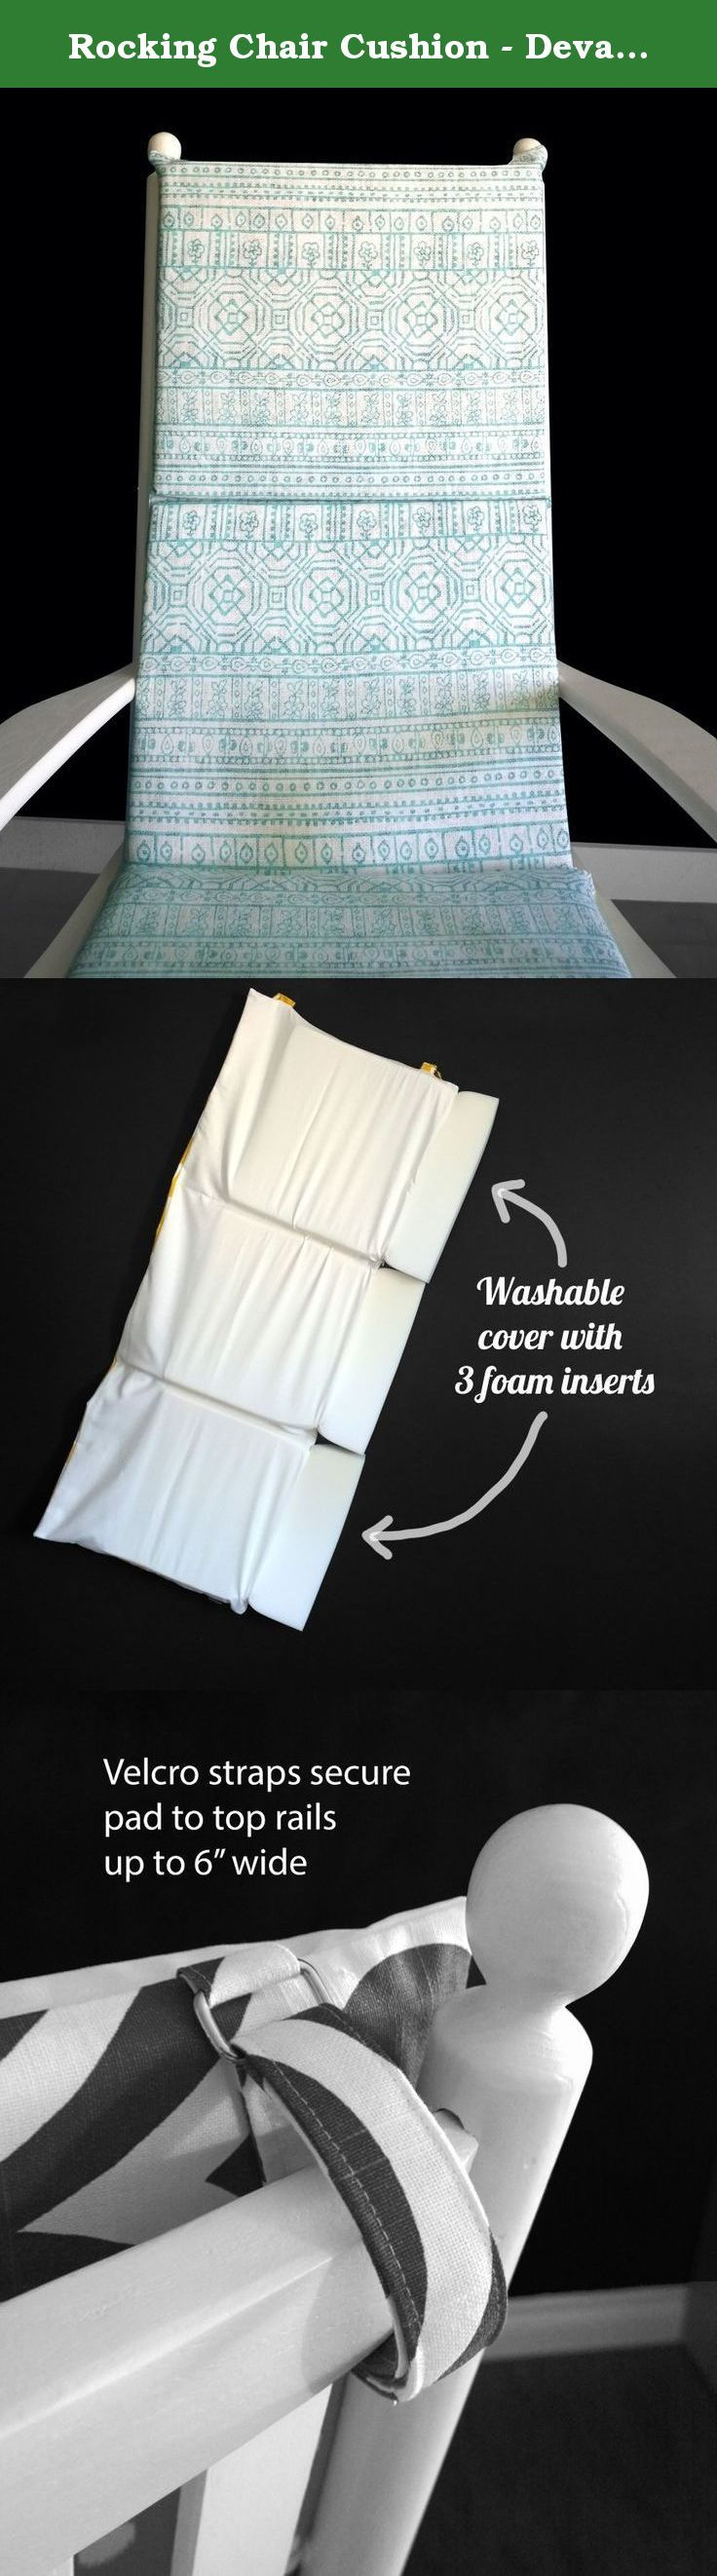 1000 ideas about rocking chair pads on pinterest diy seat pads chair pads and kitchen chair pads - Rocking chair cushion diy ...